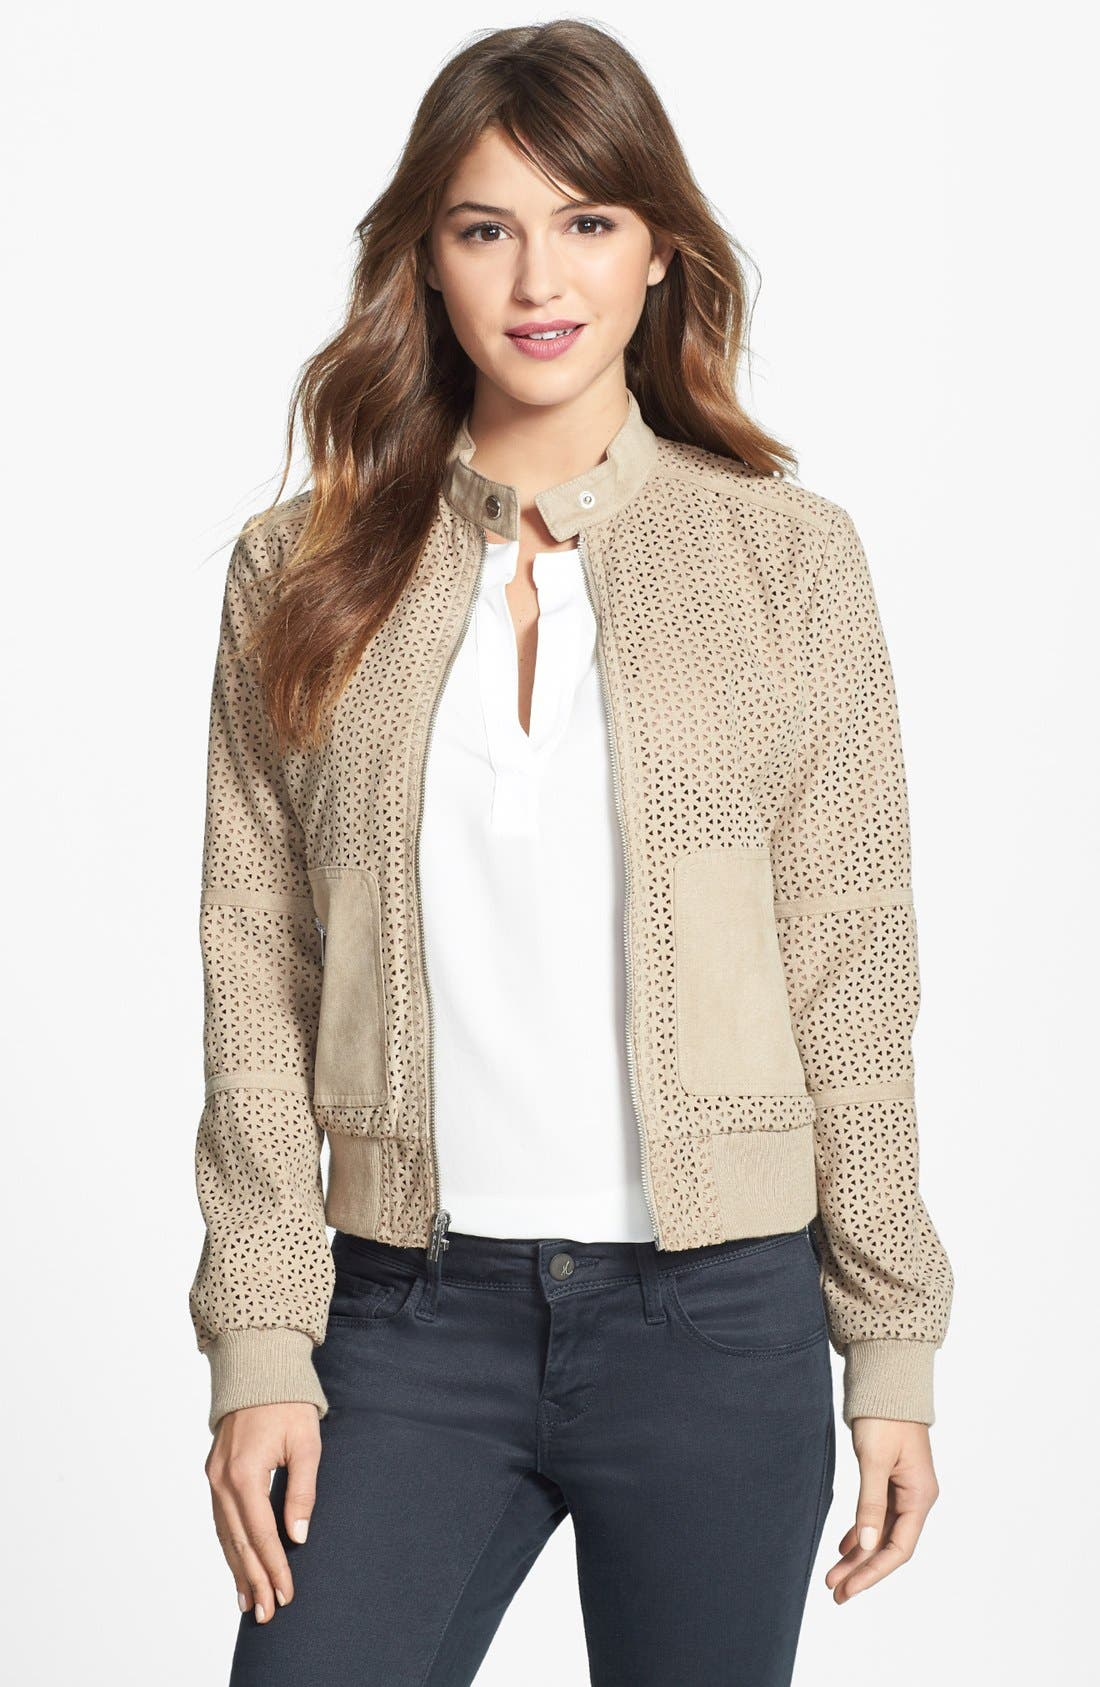 Main Image - Kenneth Cole New York Perforated Faux Suede Bomber Jacket (Regular & Petite)